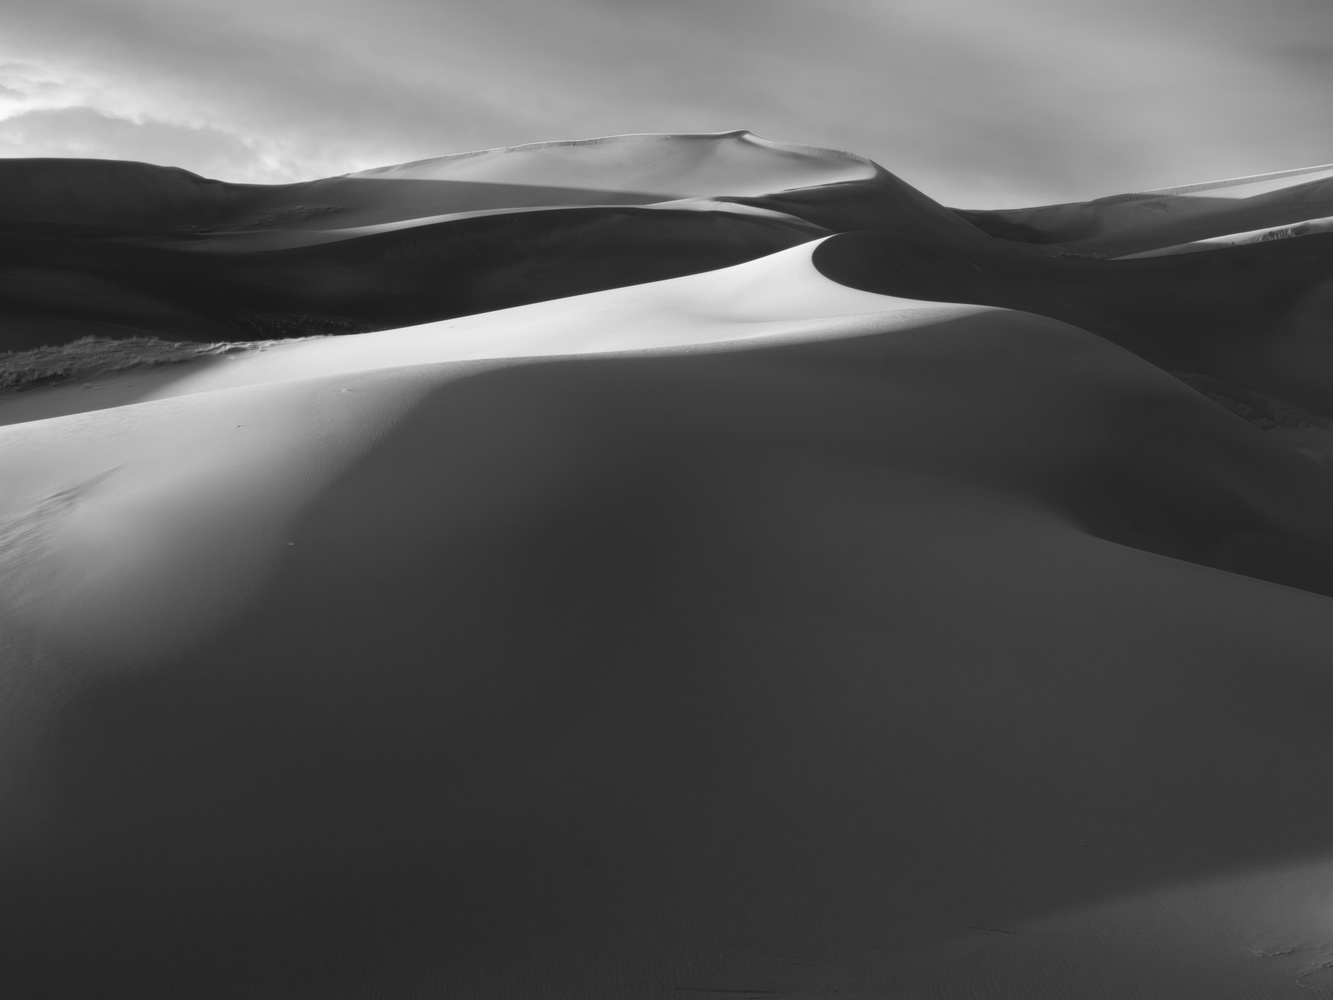 Dunes, 2 by Moishe Lettvin